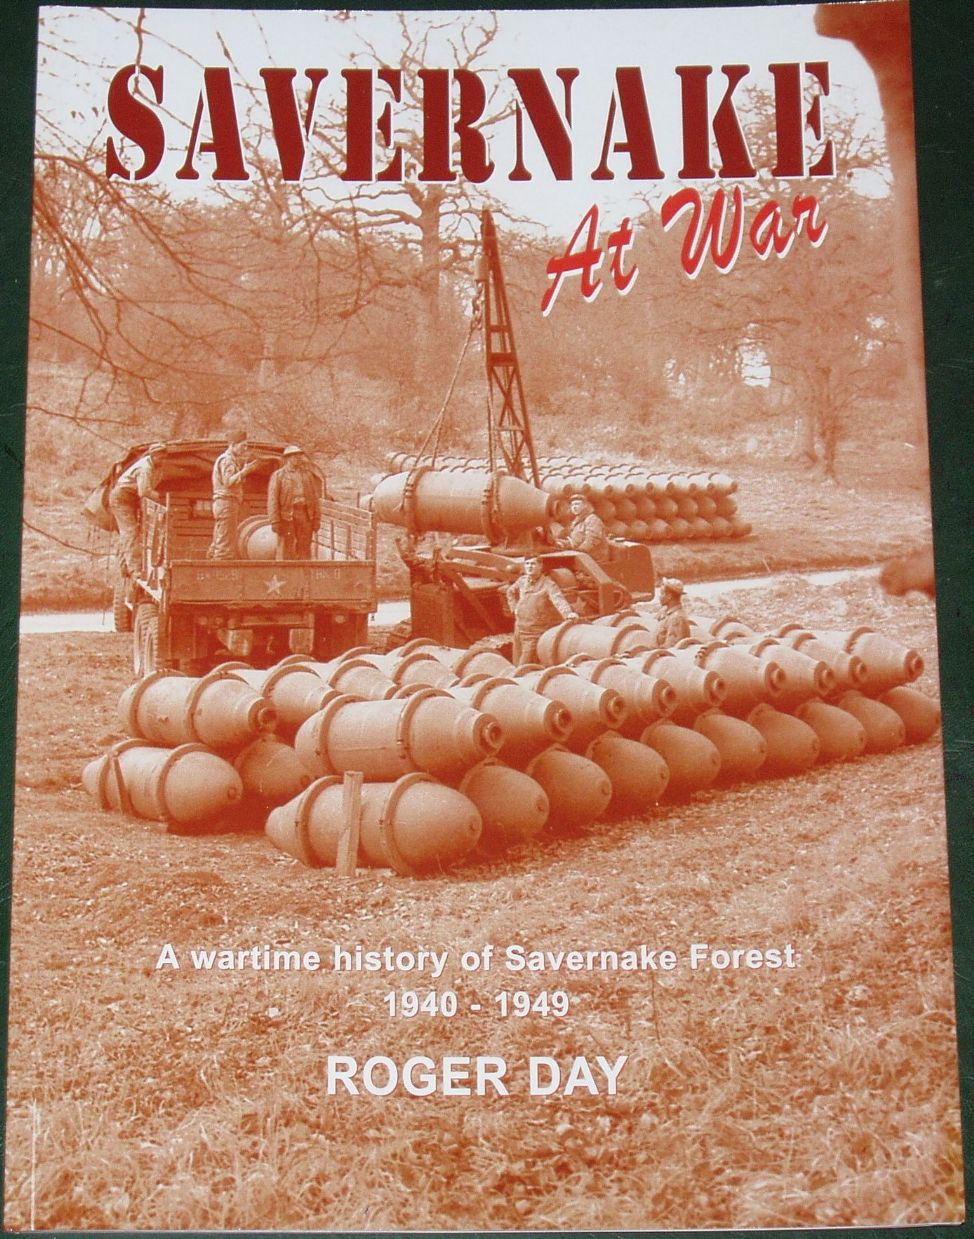 Savernake At War - A Wartime History of Savernake Forest 1940-1949 by Roger Day